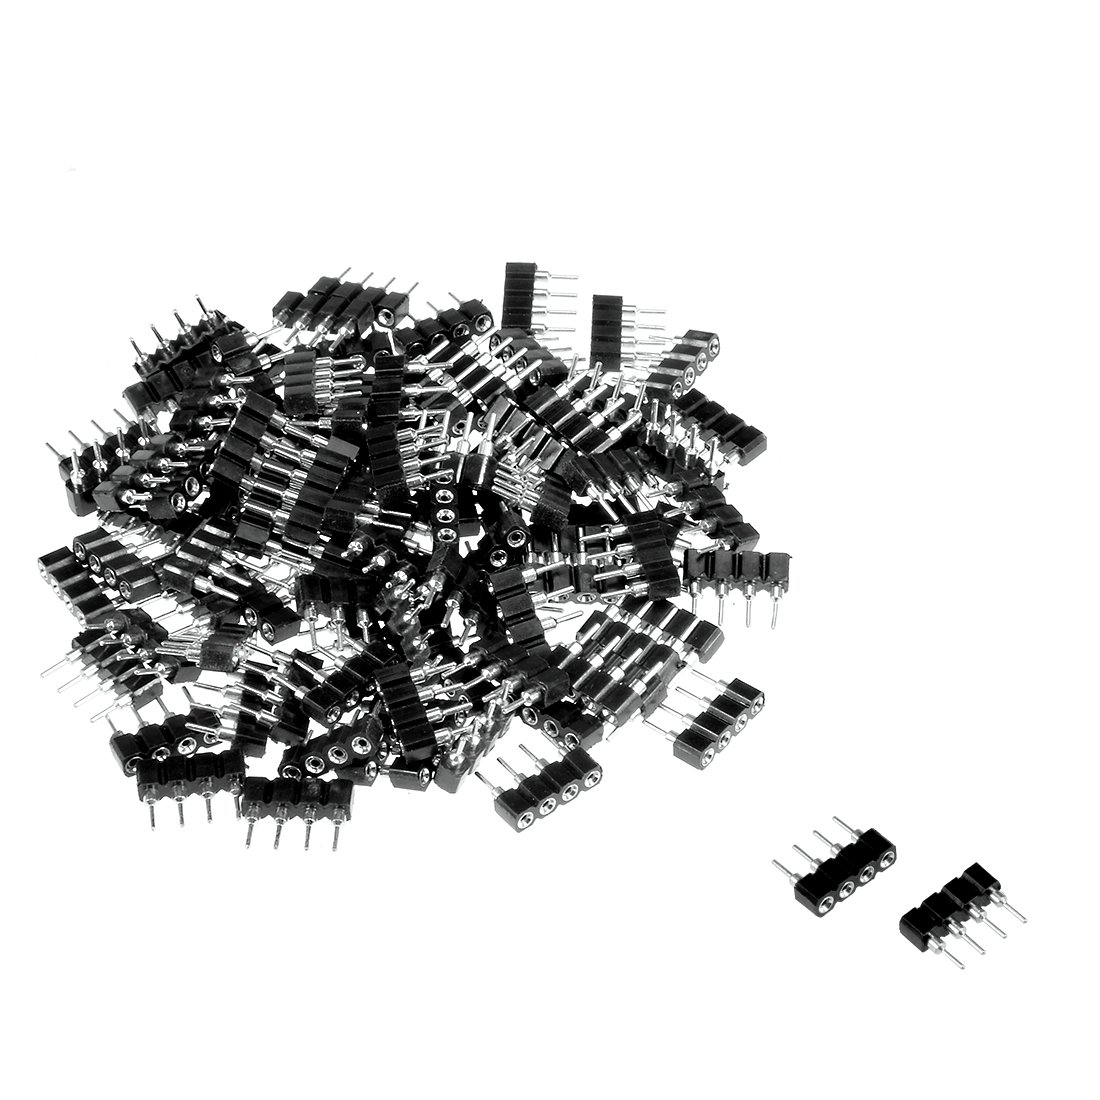 Sourcingmap 100pcs 4 Pin Male to Female Plug Header Adapter Connector Fit RGB/3528/5050 LED Chip Strip Black [Energy Class A++] a18042500ux0417